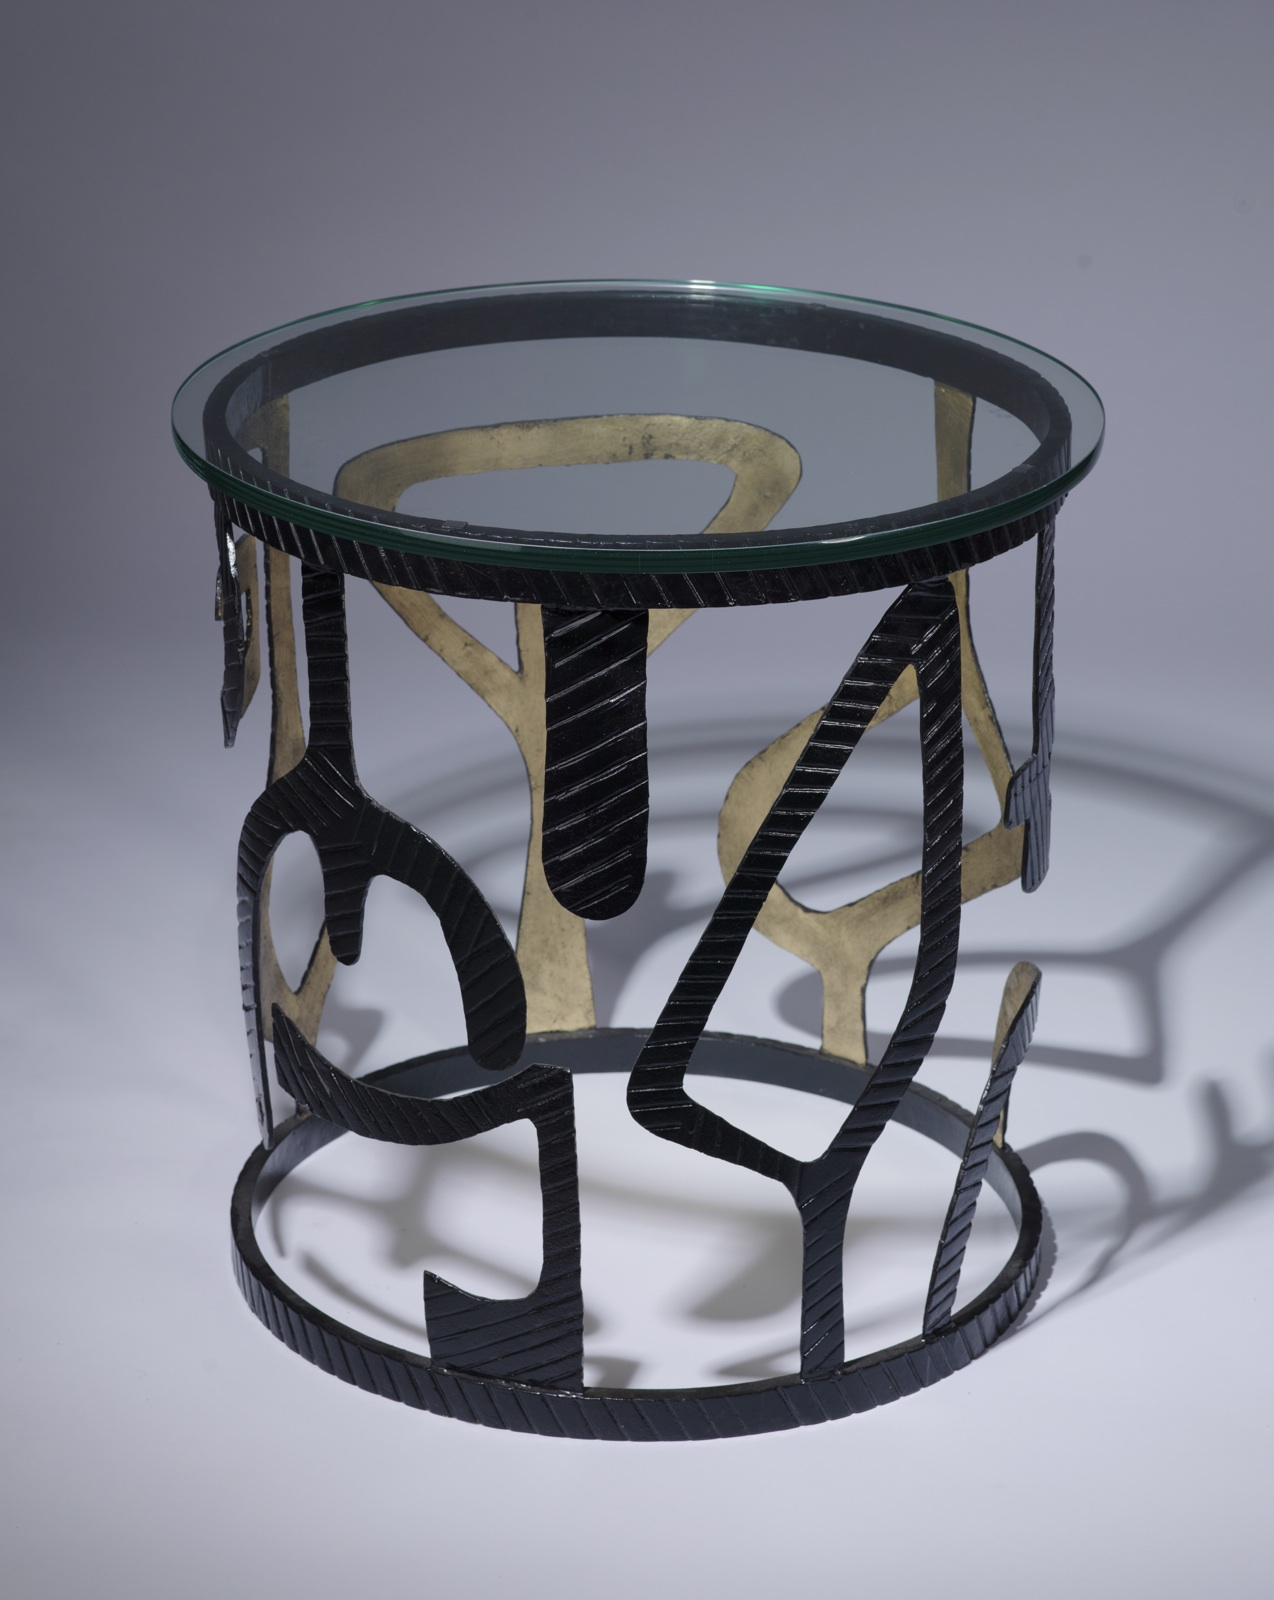 Unusual Accent Tables Pair Of Unique Modern Wrought Iron 39miro 39 Side Tables In